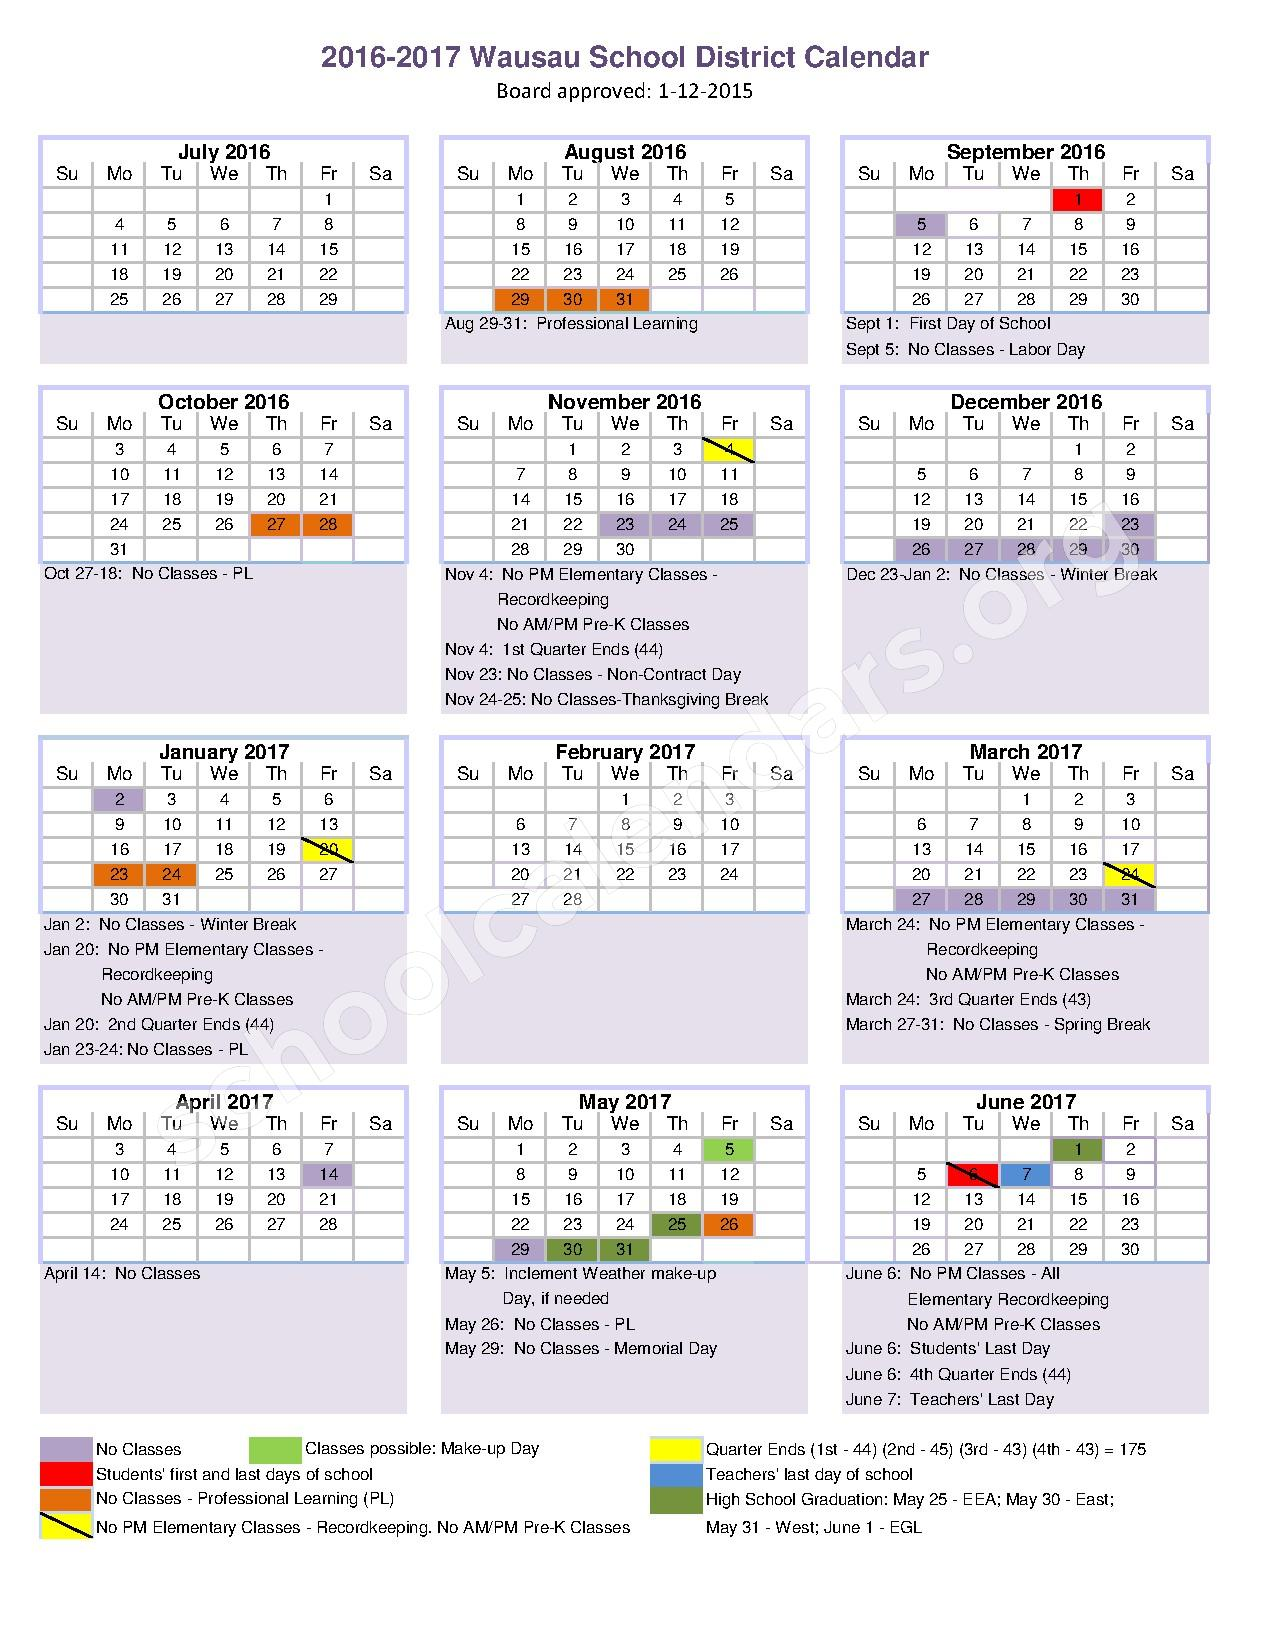 2016 - 2017 School Calendar – Wausau School District – page 1